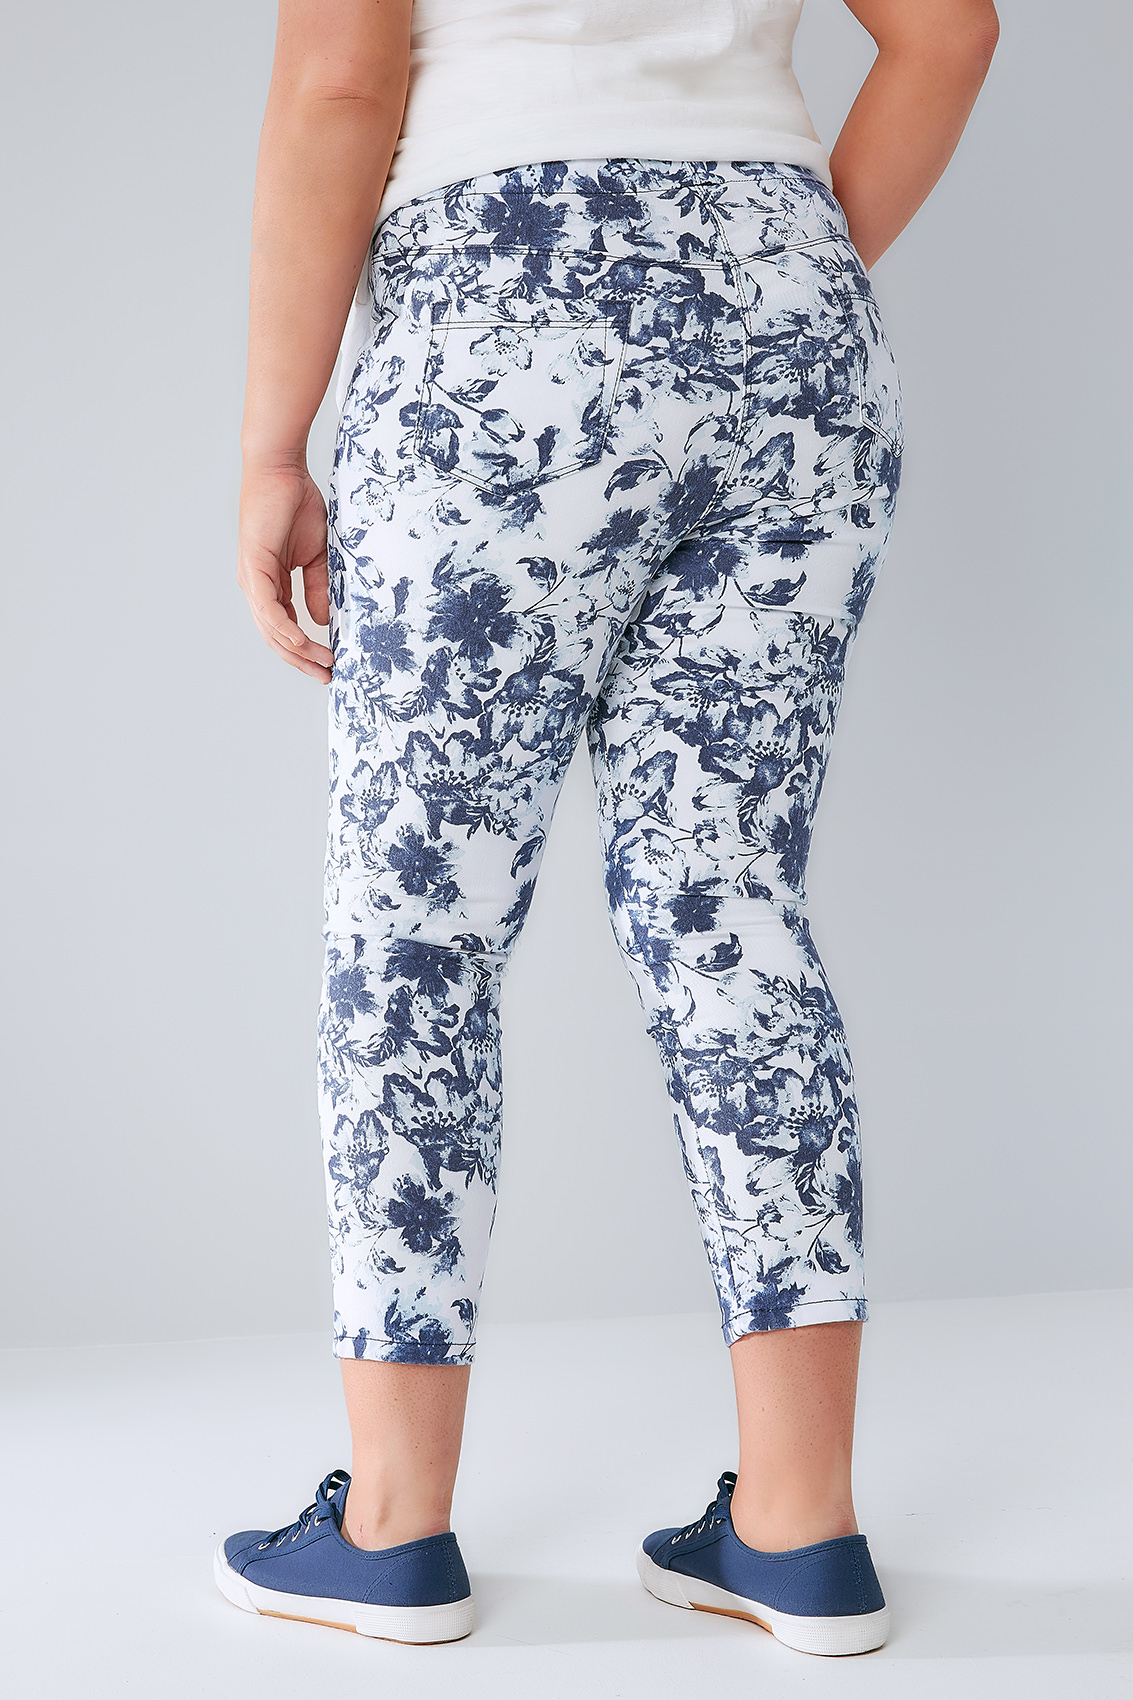 Jeggings. Capture your style and show who you are with our figure flattering range of plus size denim jeggings. Our ultimate collection of casual and occasionwear options has been specially chosen for the fashion addict who never has enough to wear.